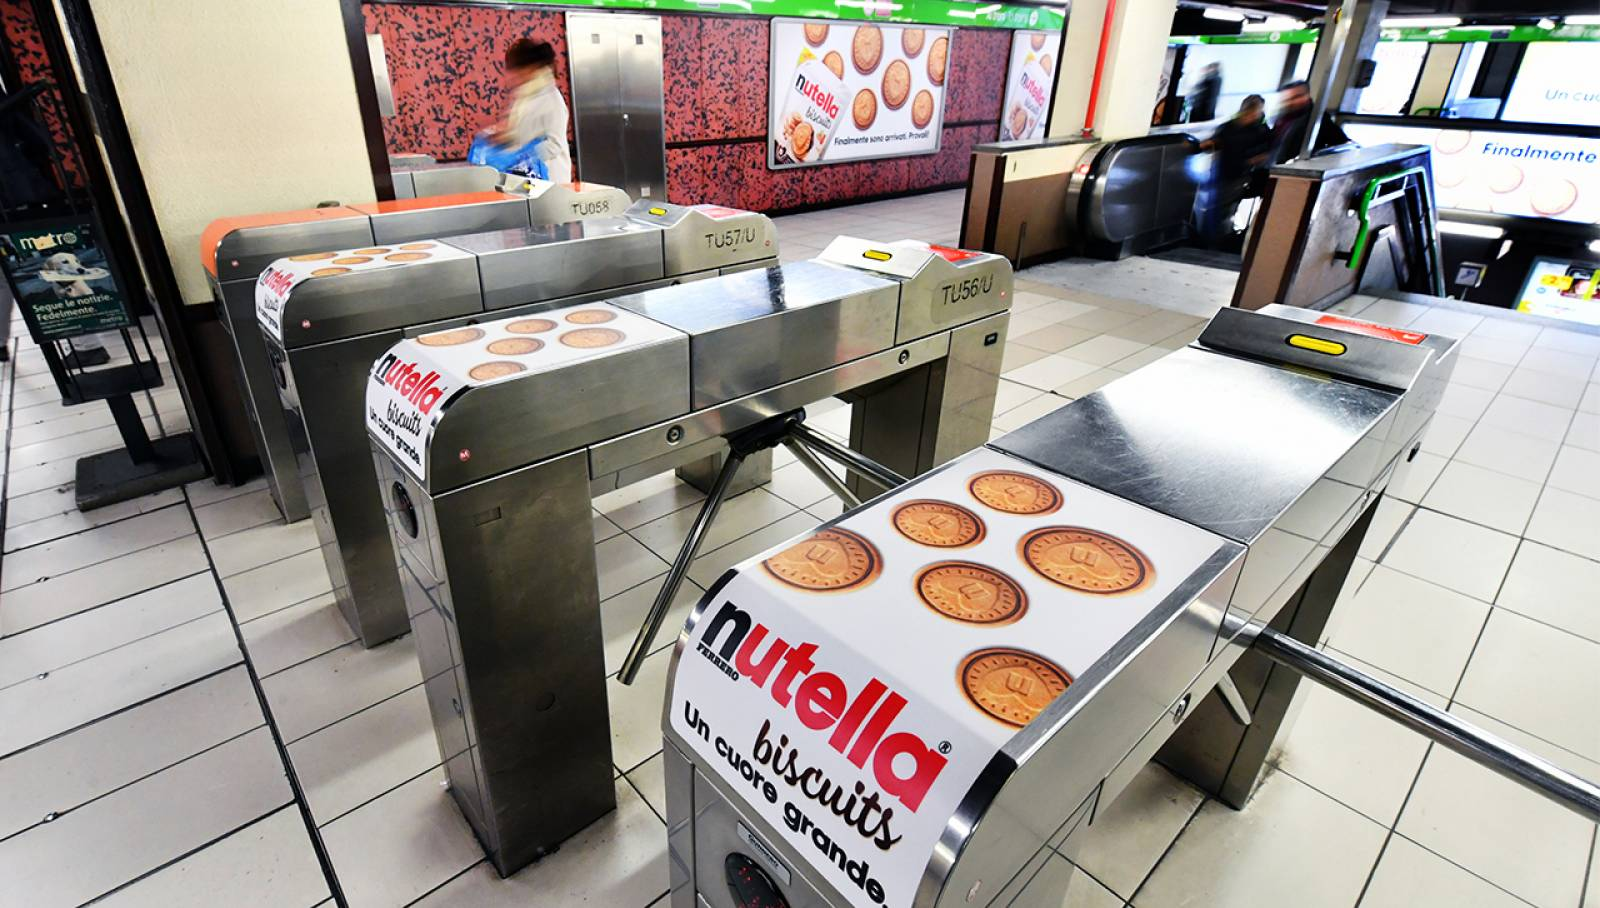 Outdoor advertising IGPDecaux a Milano Station Domination per Ferrero Nutella Biscuits